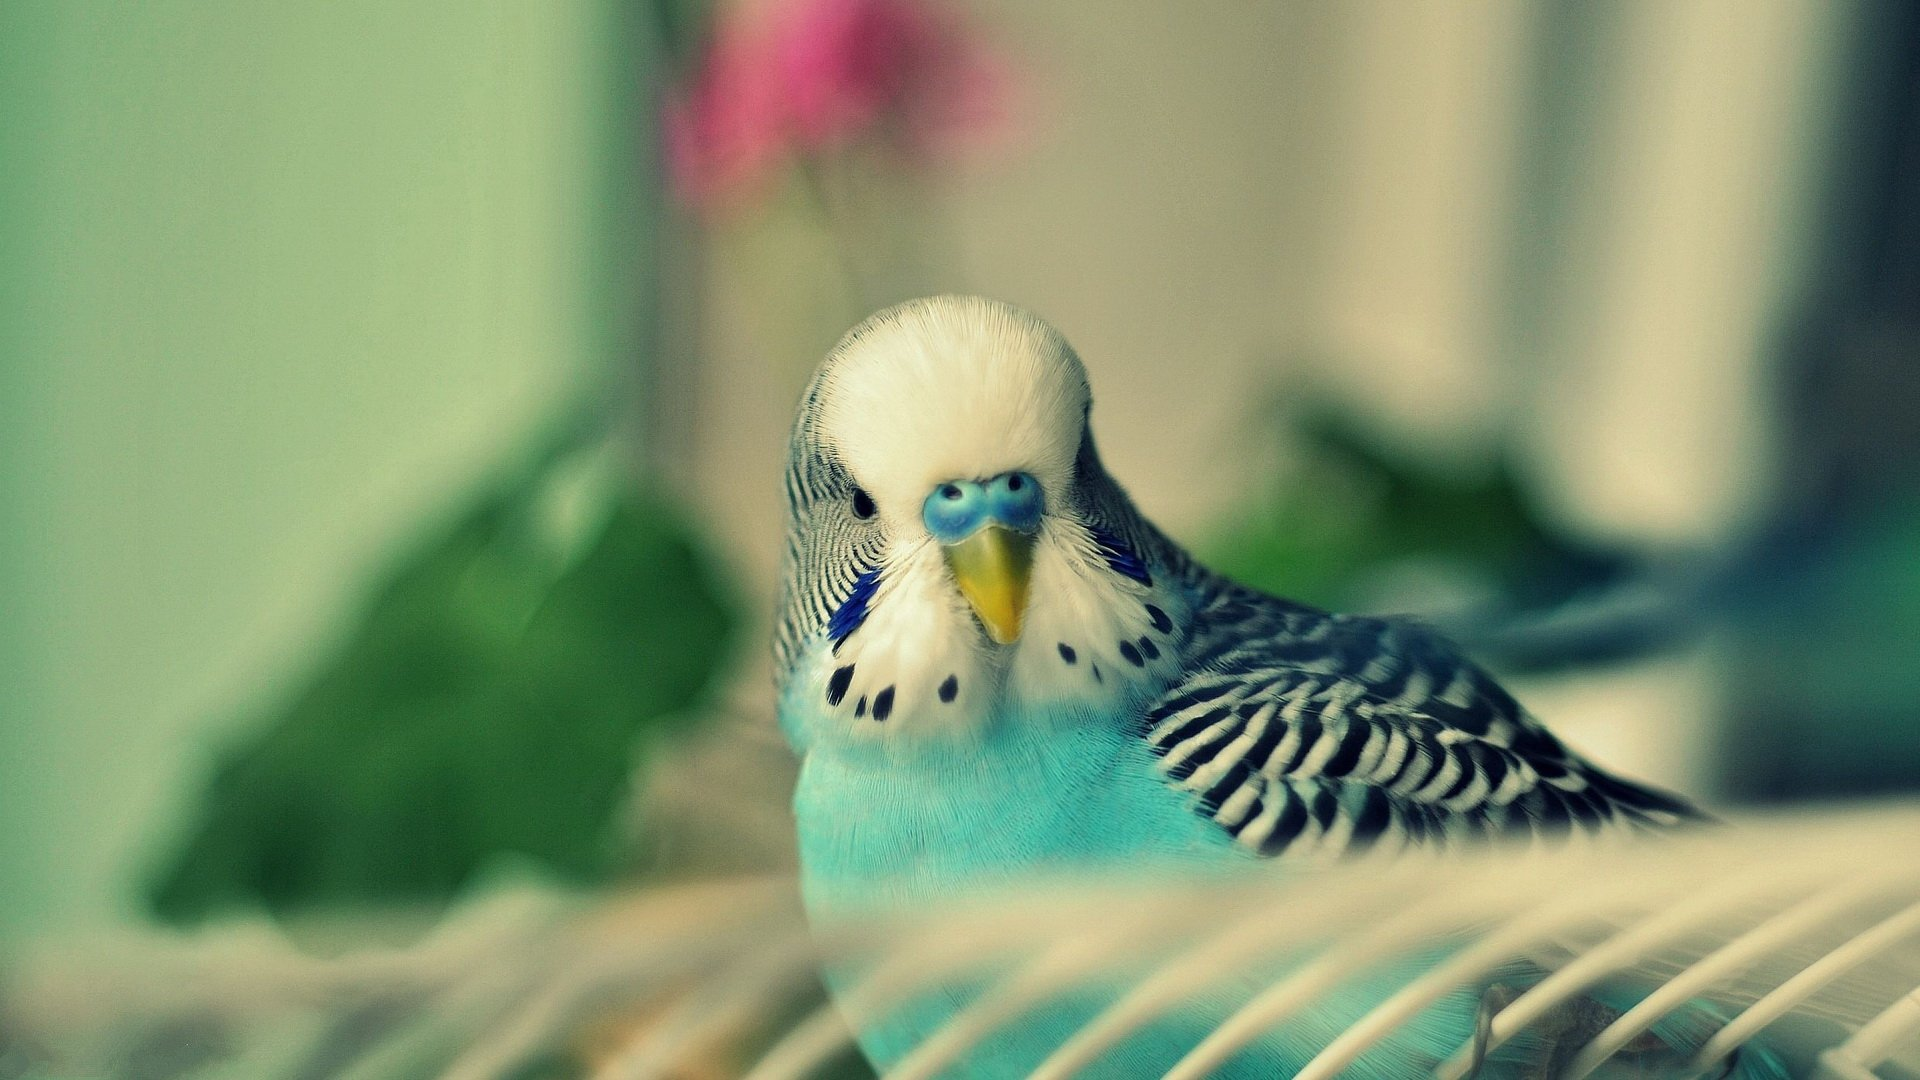 Download hd 1920x1080 Budgerigar PC background ID:32578 for free